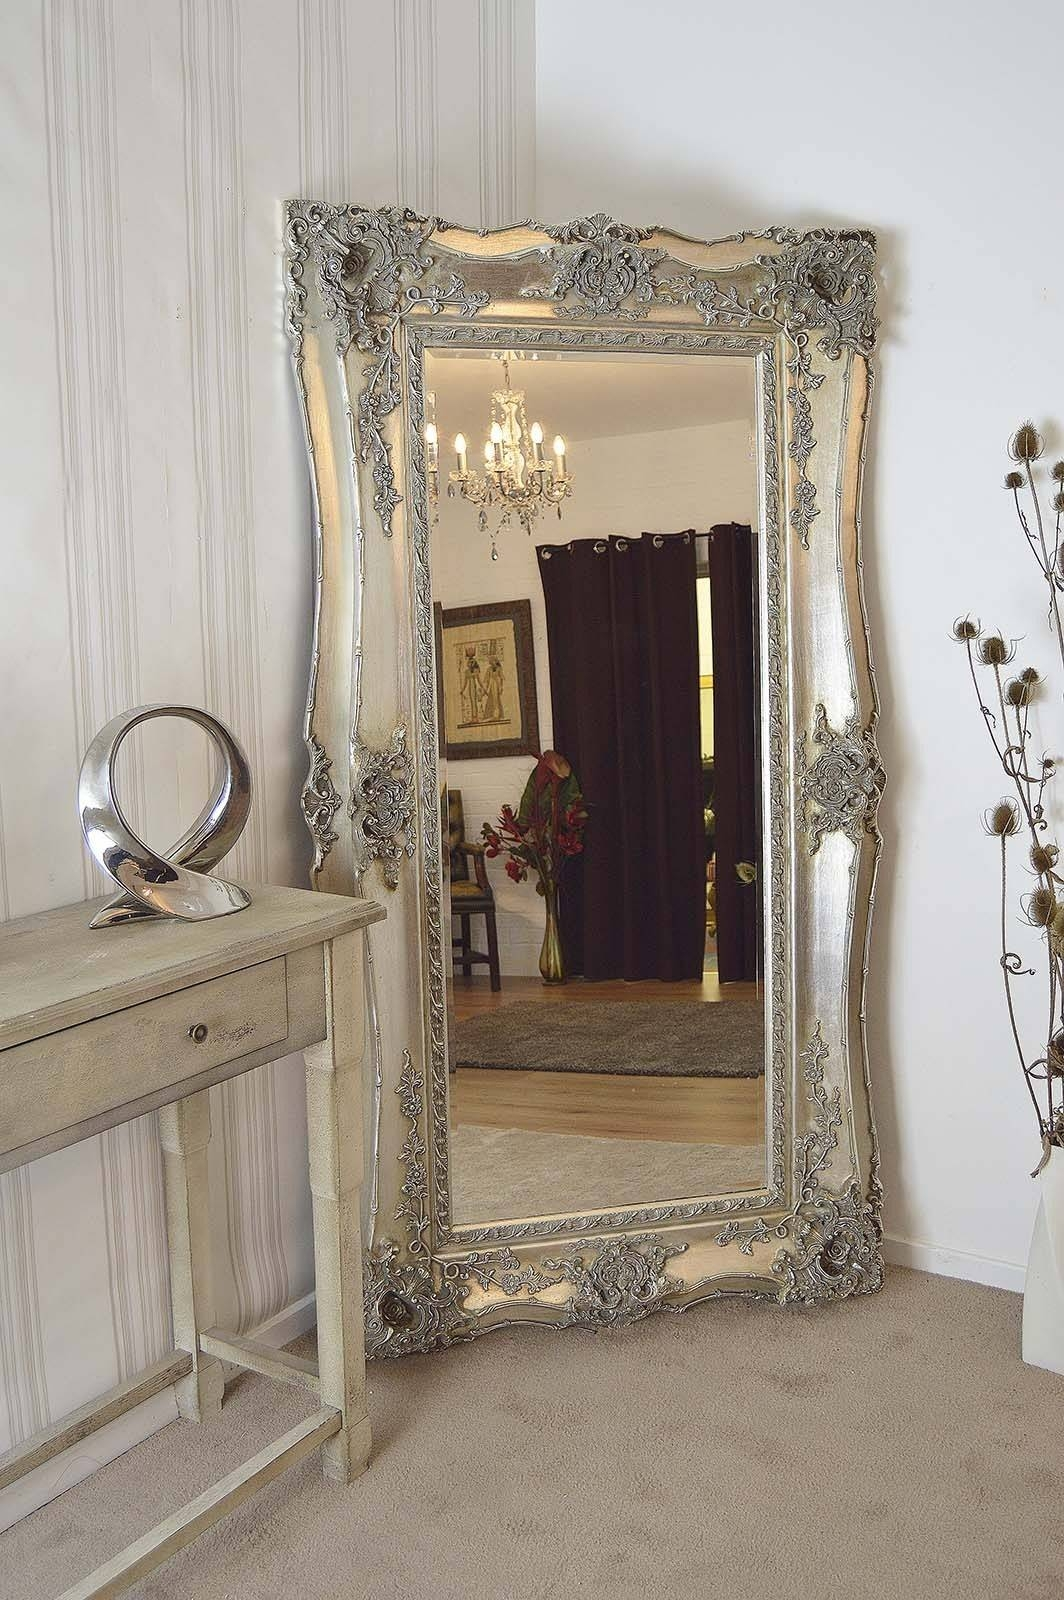 Homeware: Oval Full Length Standing Mirror | Large Floor Mirrors In Silver Free Standing Mirrors (View 15 of 25)